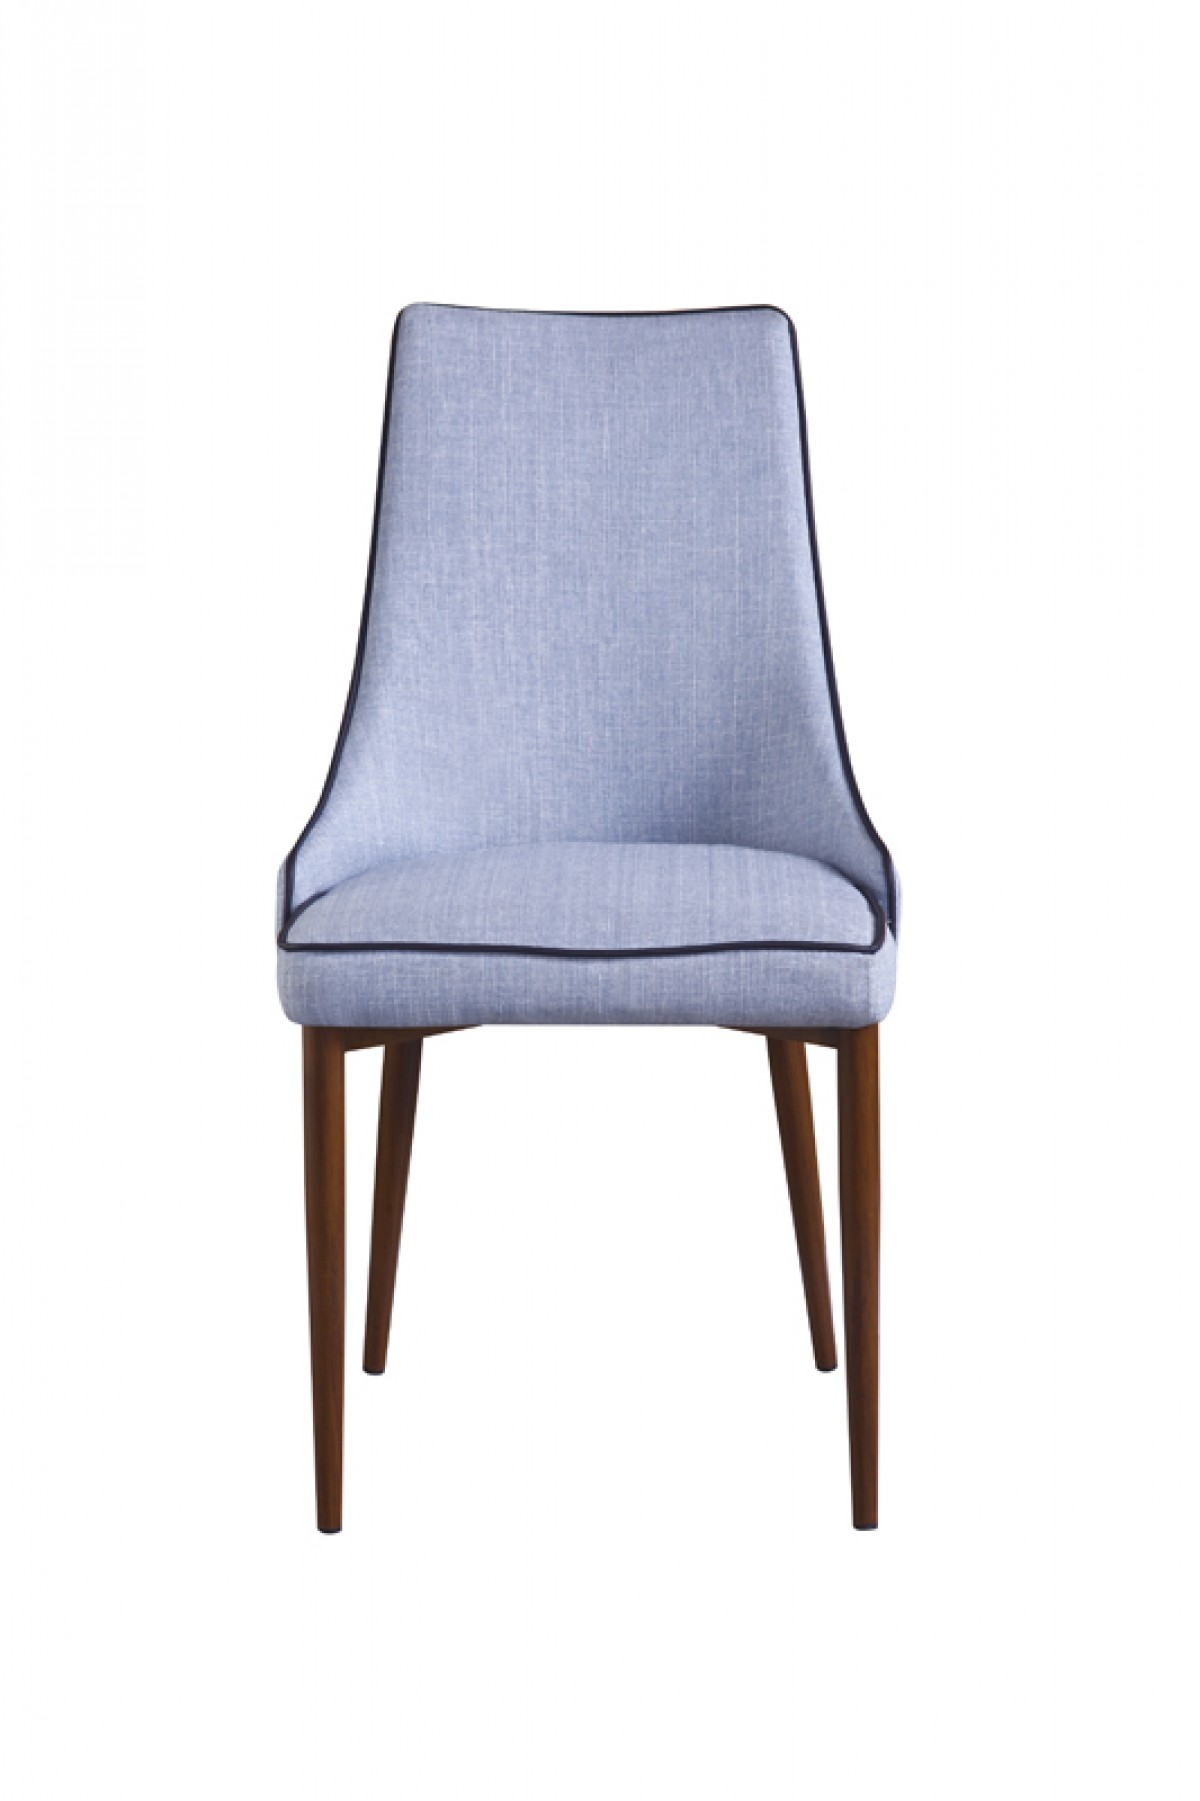 Modrest Lenora Modern Blue Dining Chair : ldc274 272976lenorablue11 30 2016hr02 from www.vigfurniture.com size 1200 x 1801 jpeg 122kB